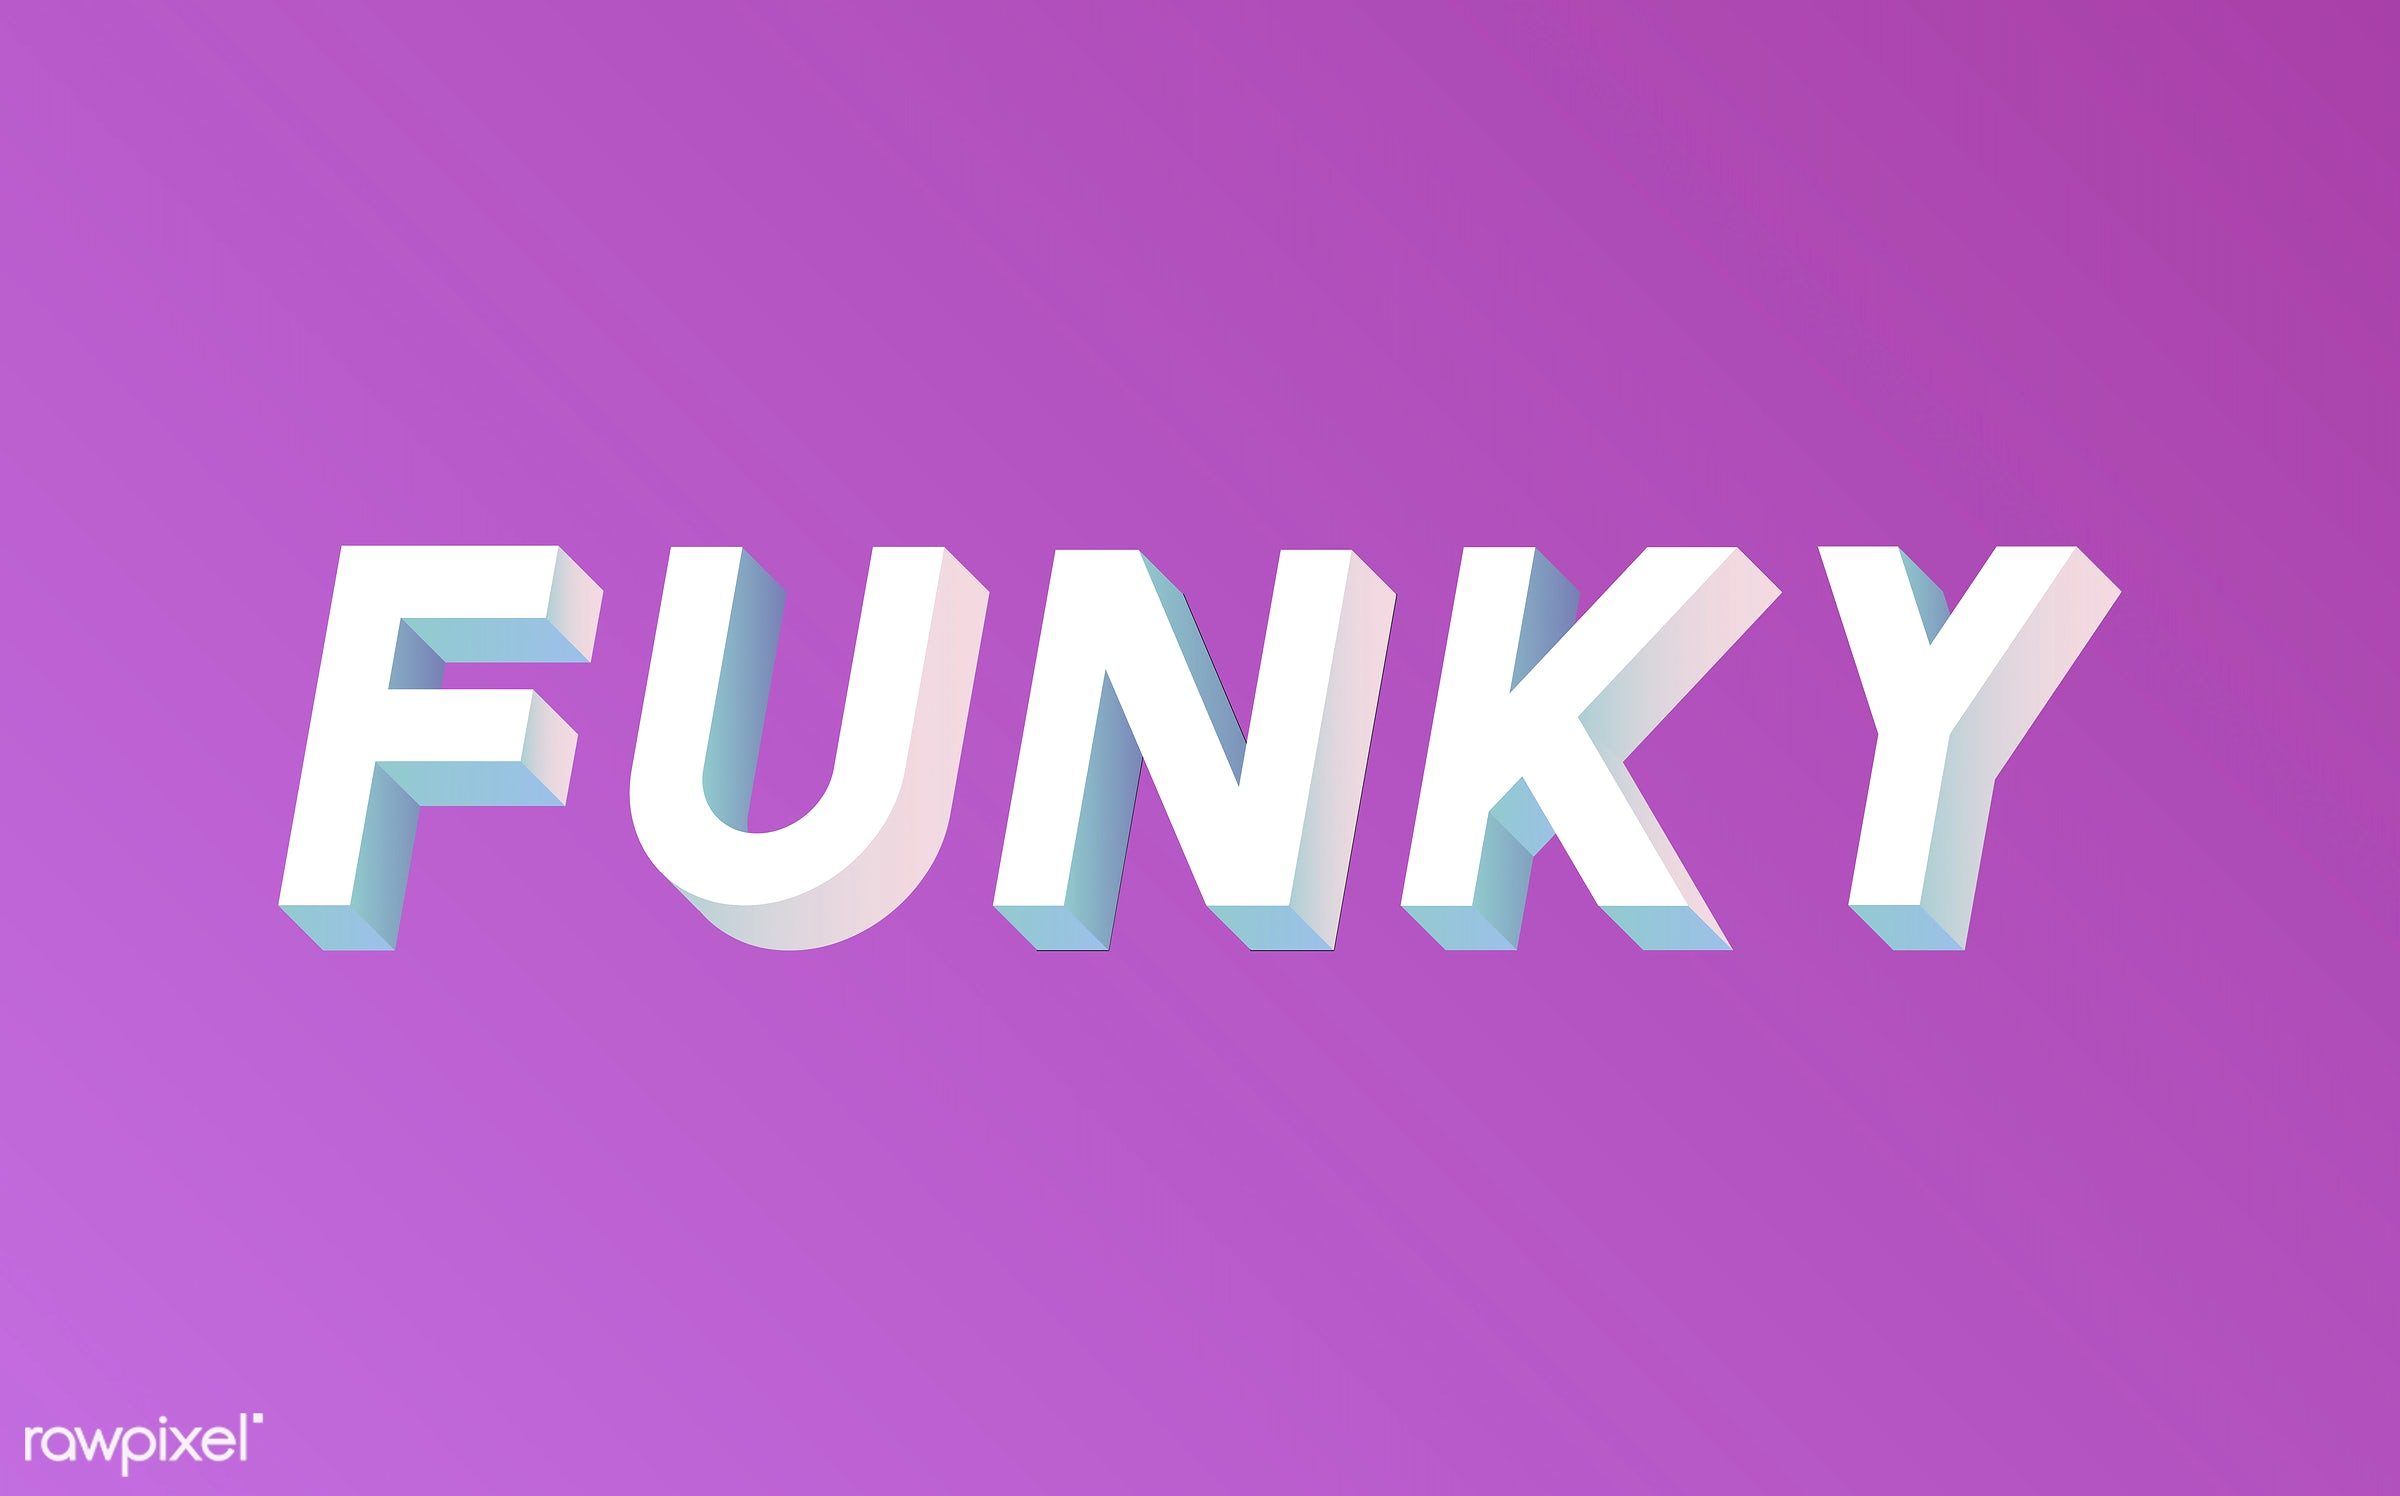 neon, colorful, 3d, three dimensional, vector, illustration, graphic, word, pink, white, cool, funky, hip